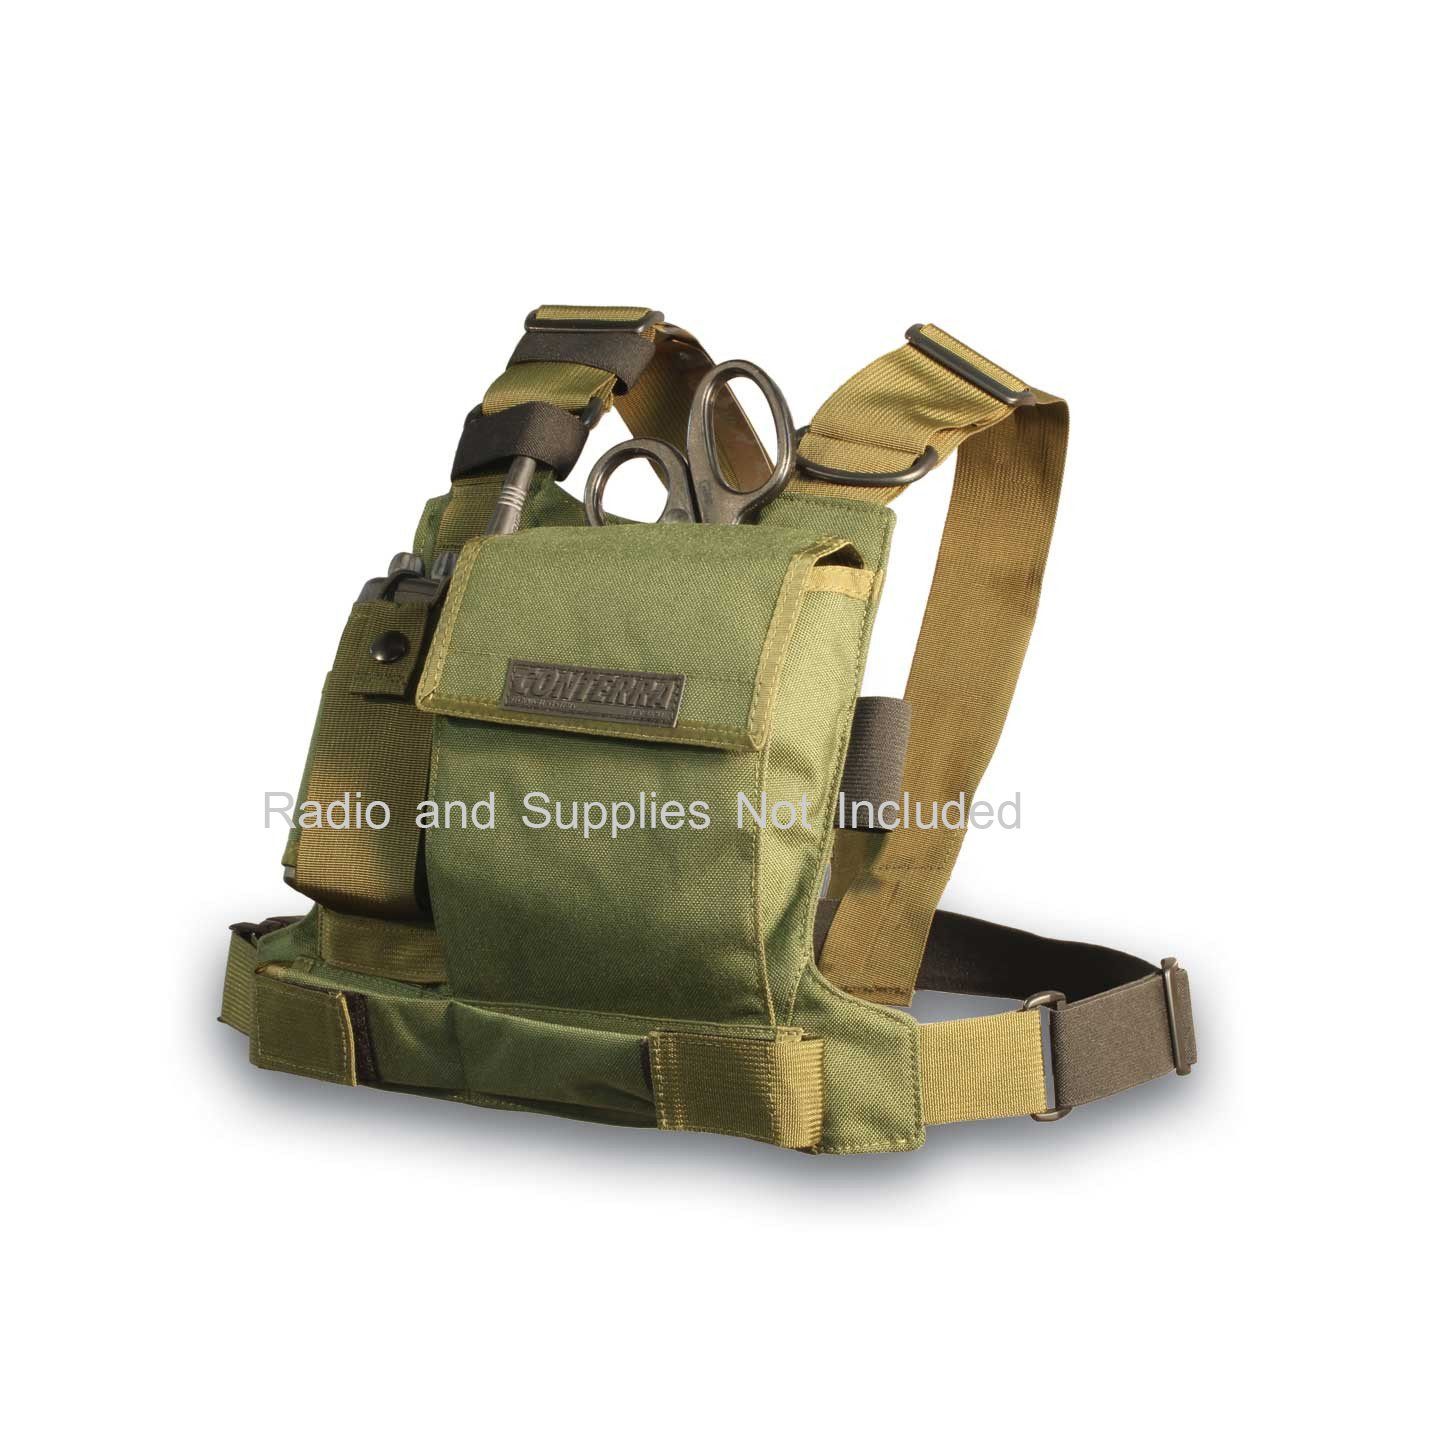 Conterra Tool Chest Radio Chest Harness (MILSPEC Green) by Conterra